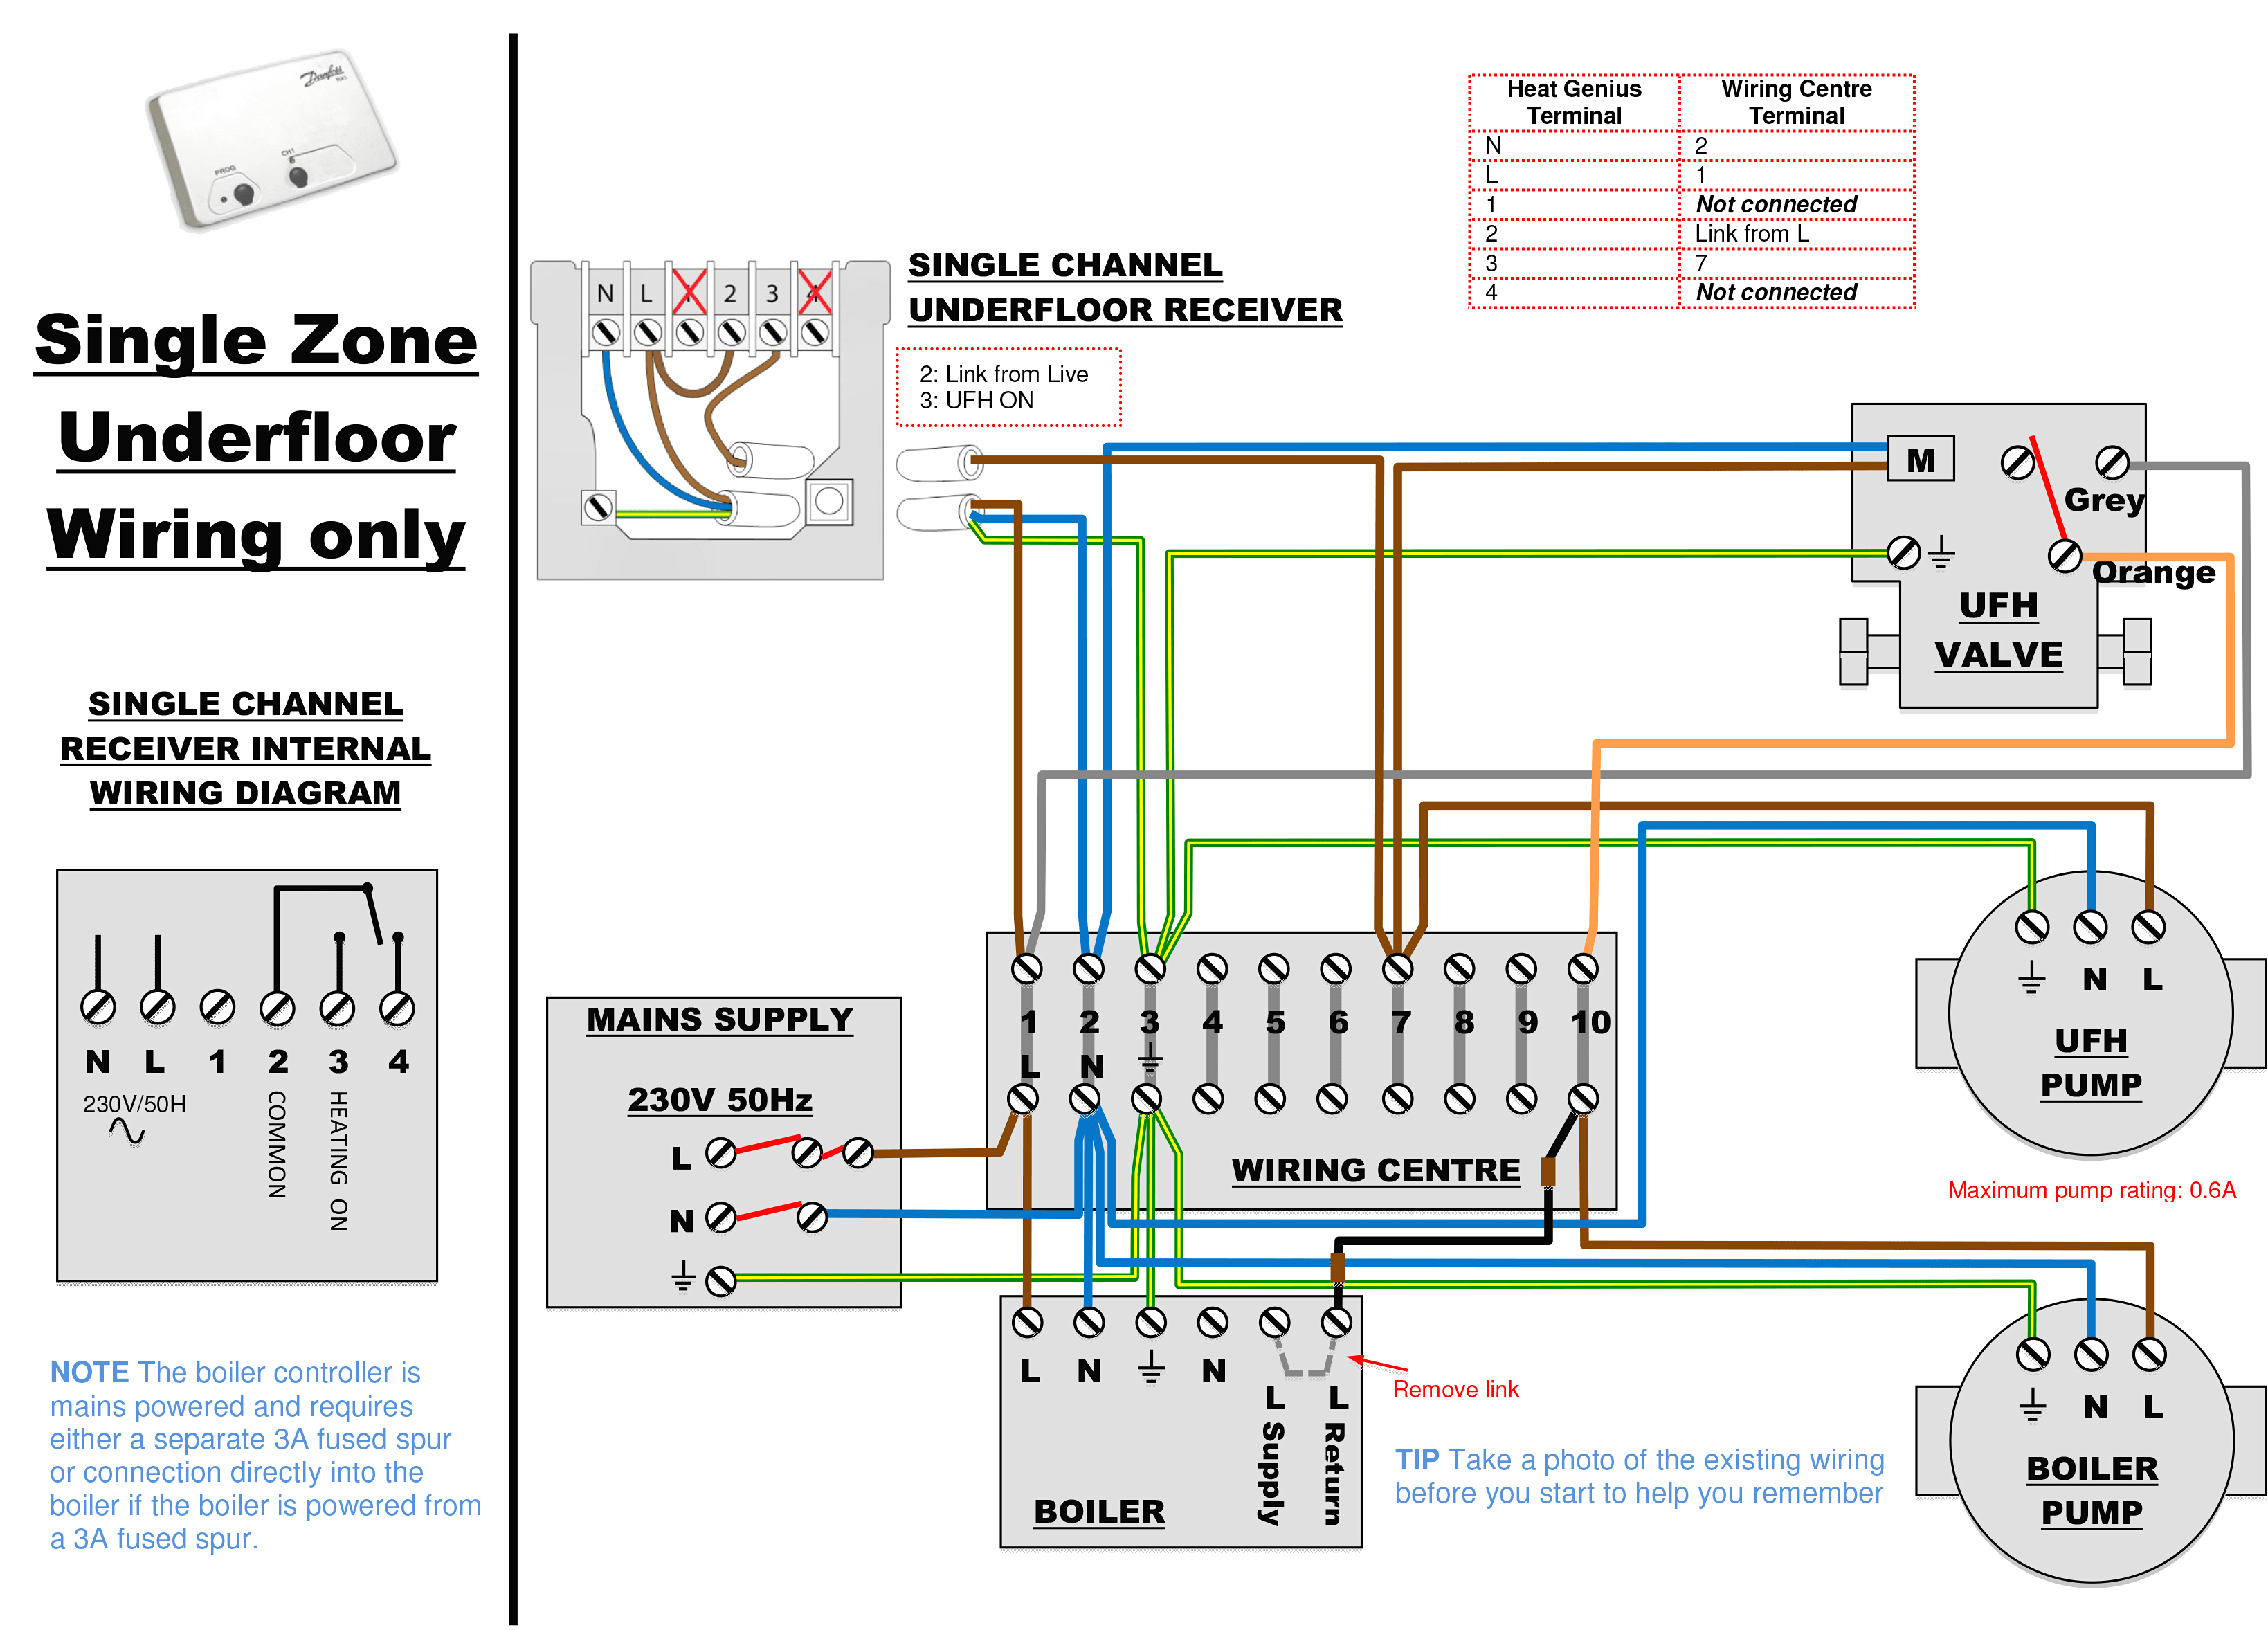 Central Boiler thermostat Wiring Diagram - Hive thermostat Wiring Diagram Fresh Boiler Wiring Diagram for thermostat to Y Plan Hive and S Wiring 8q